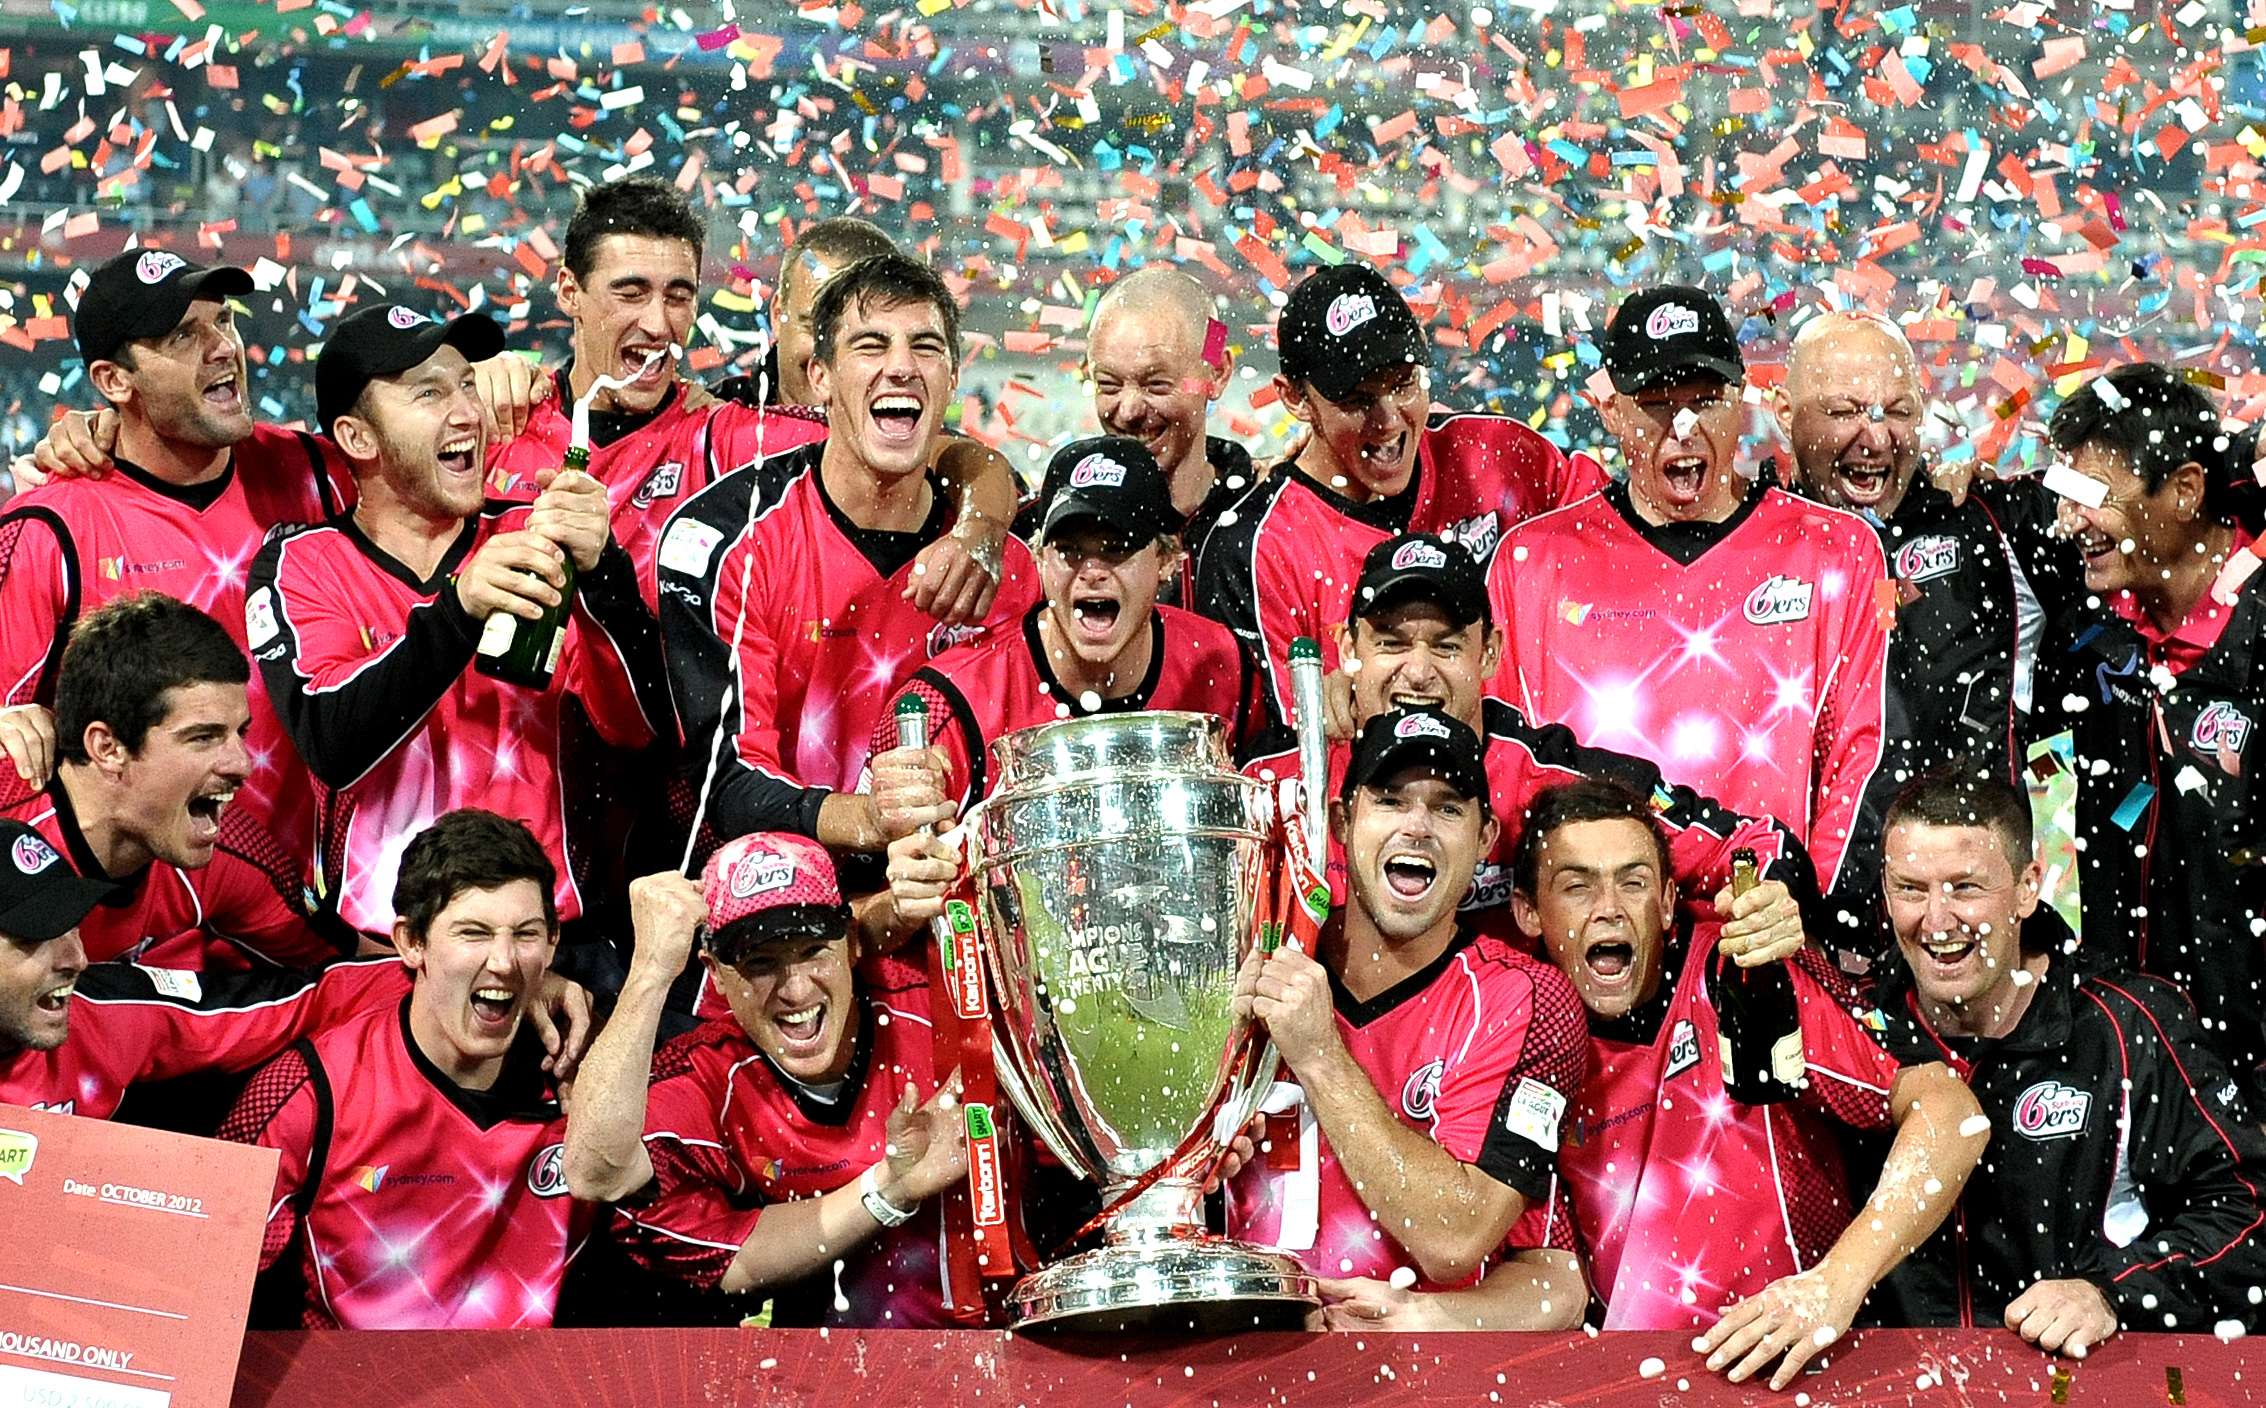 Sydney Sixers's celebrate their victory over the Lions on October 28, 2012 in the final Champions League T20